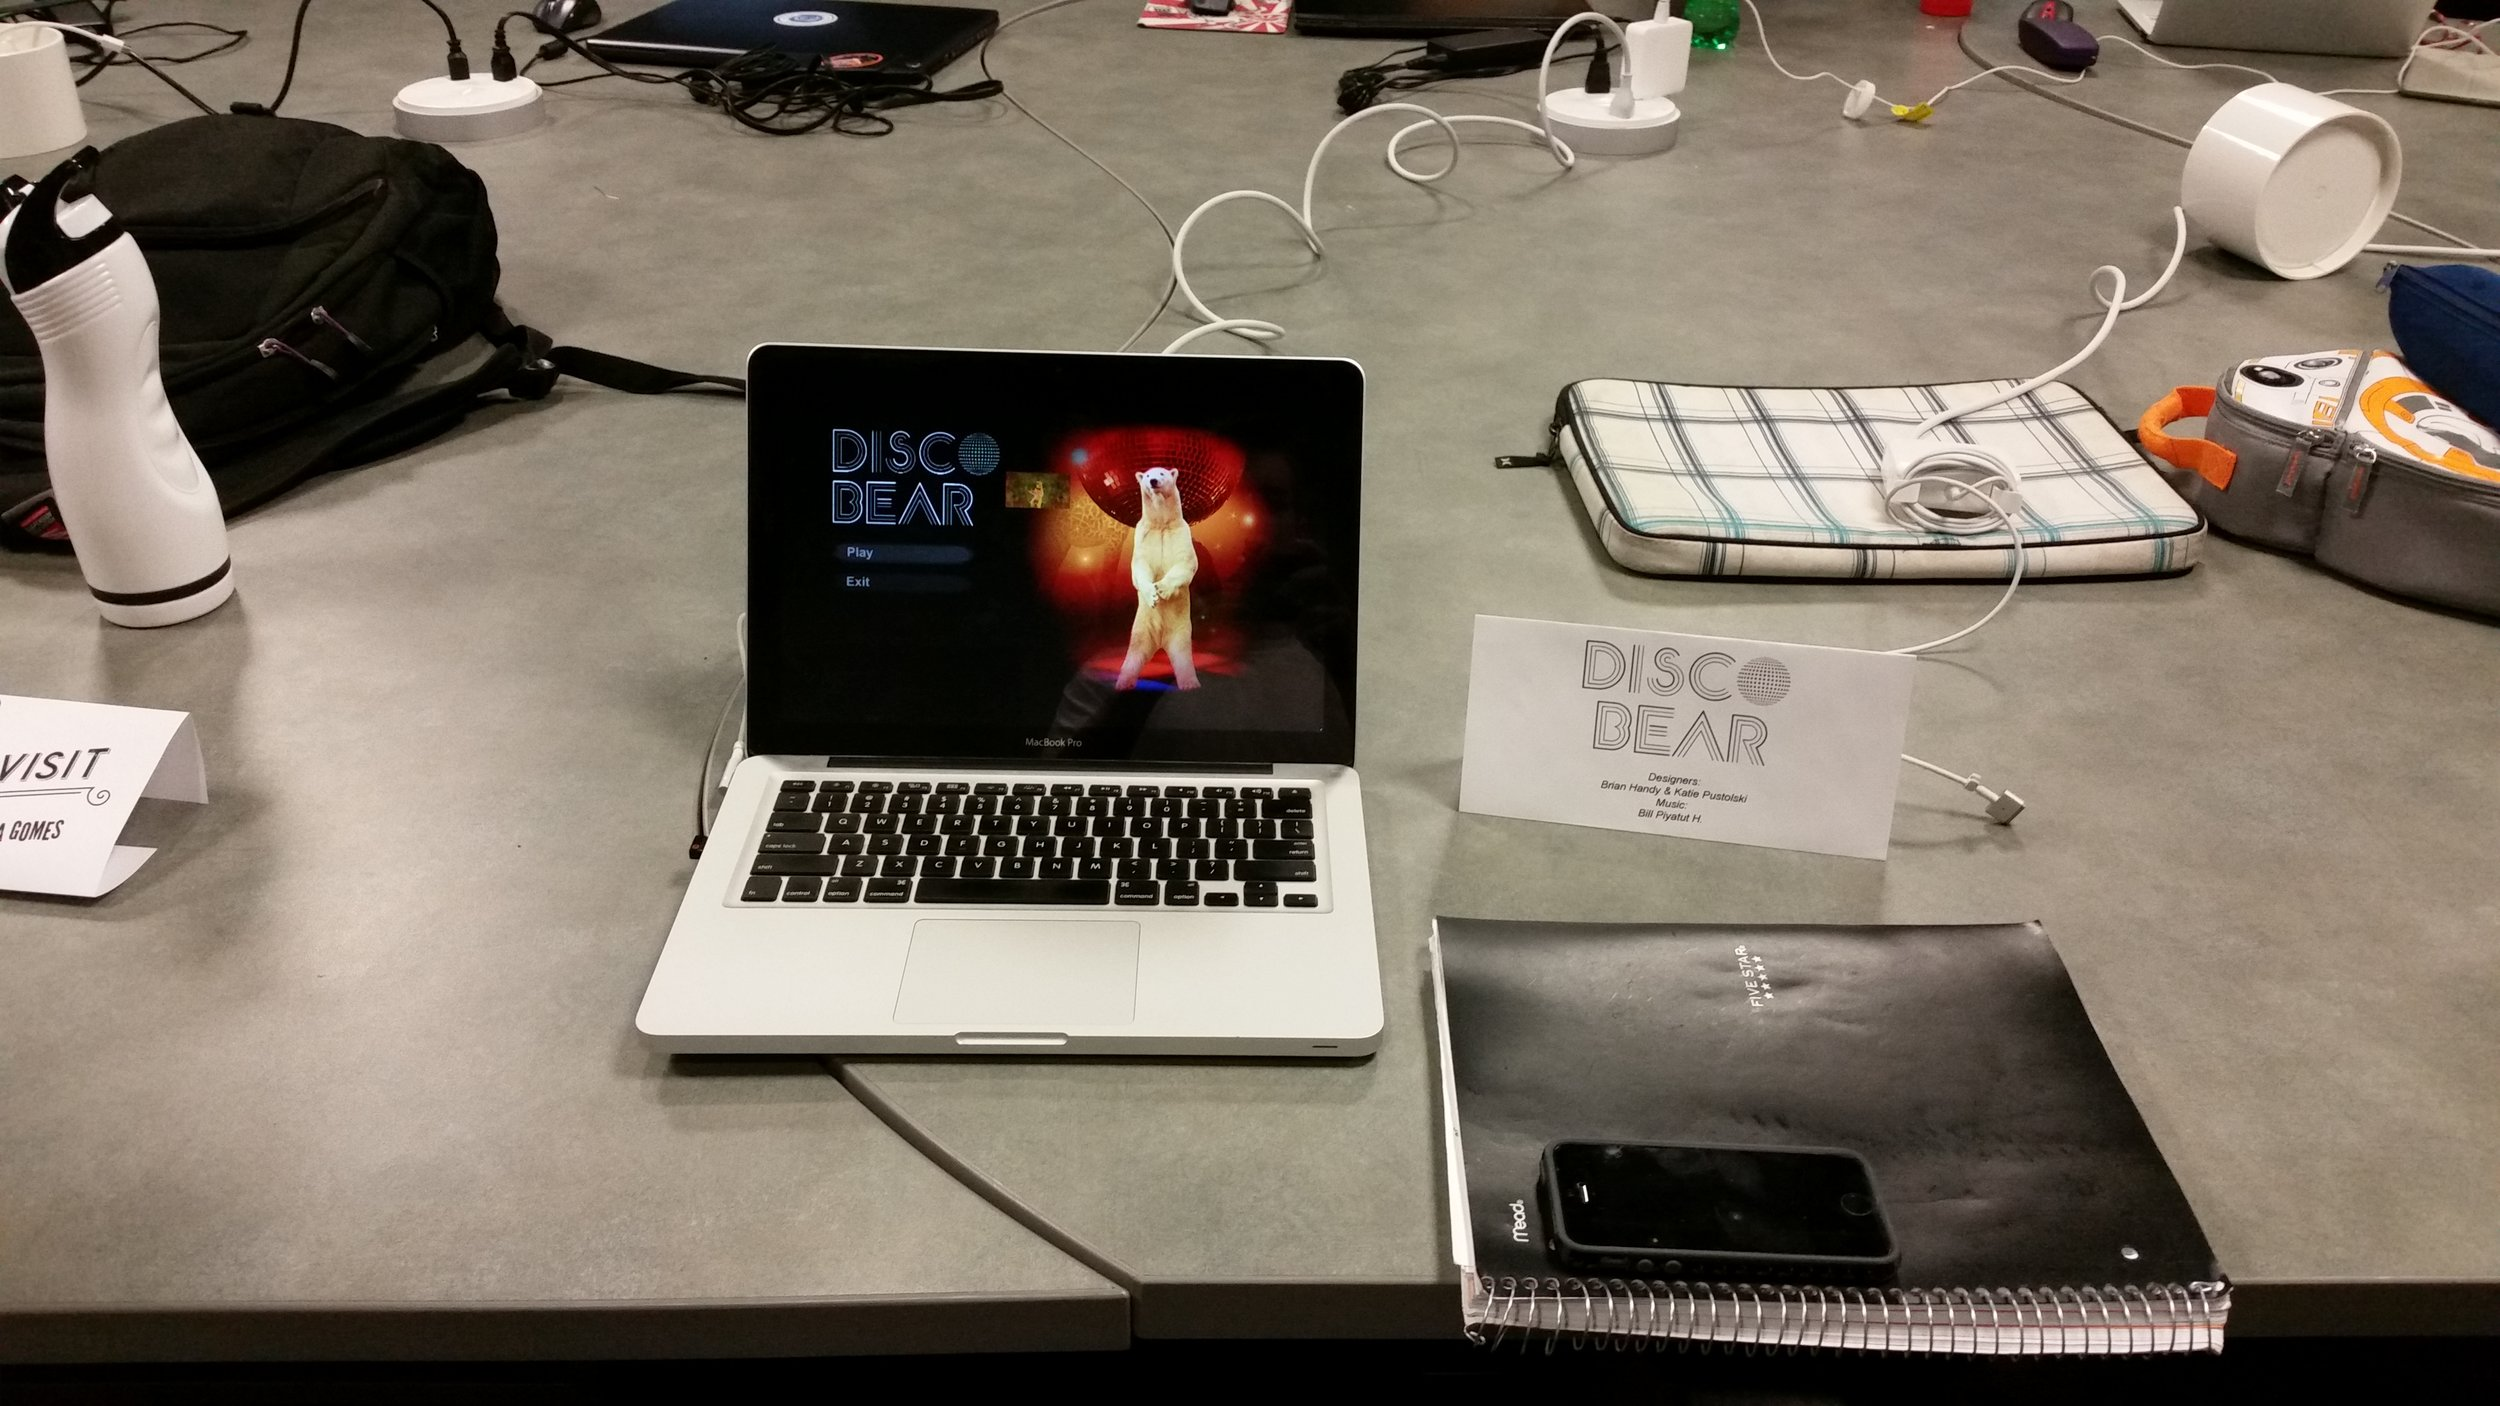 Disco Bear set up during a playtest session.